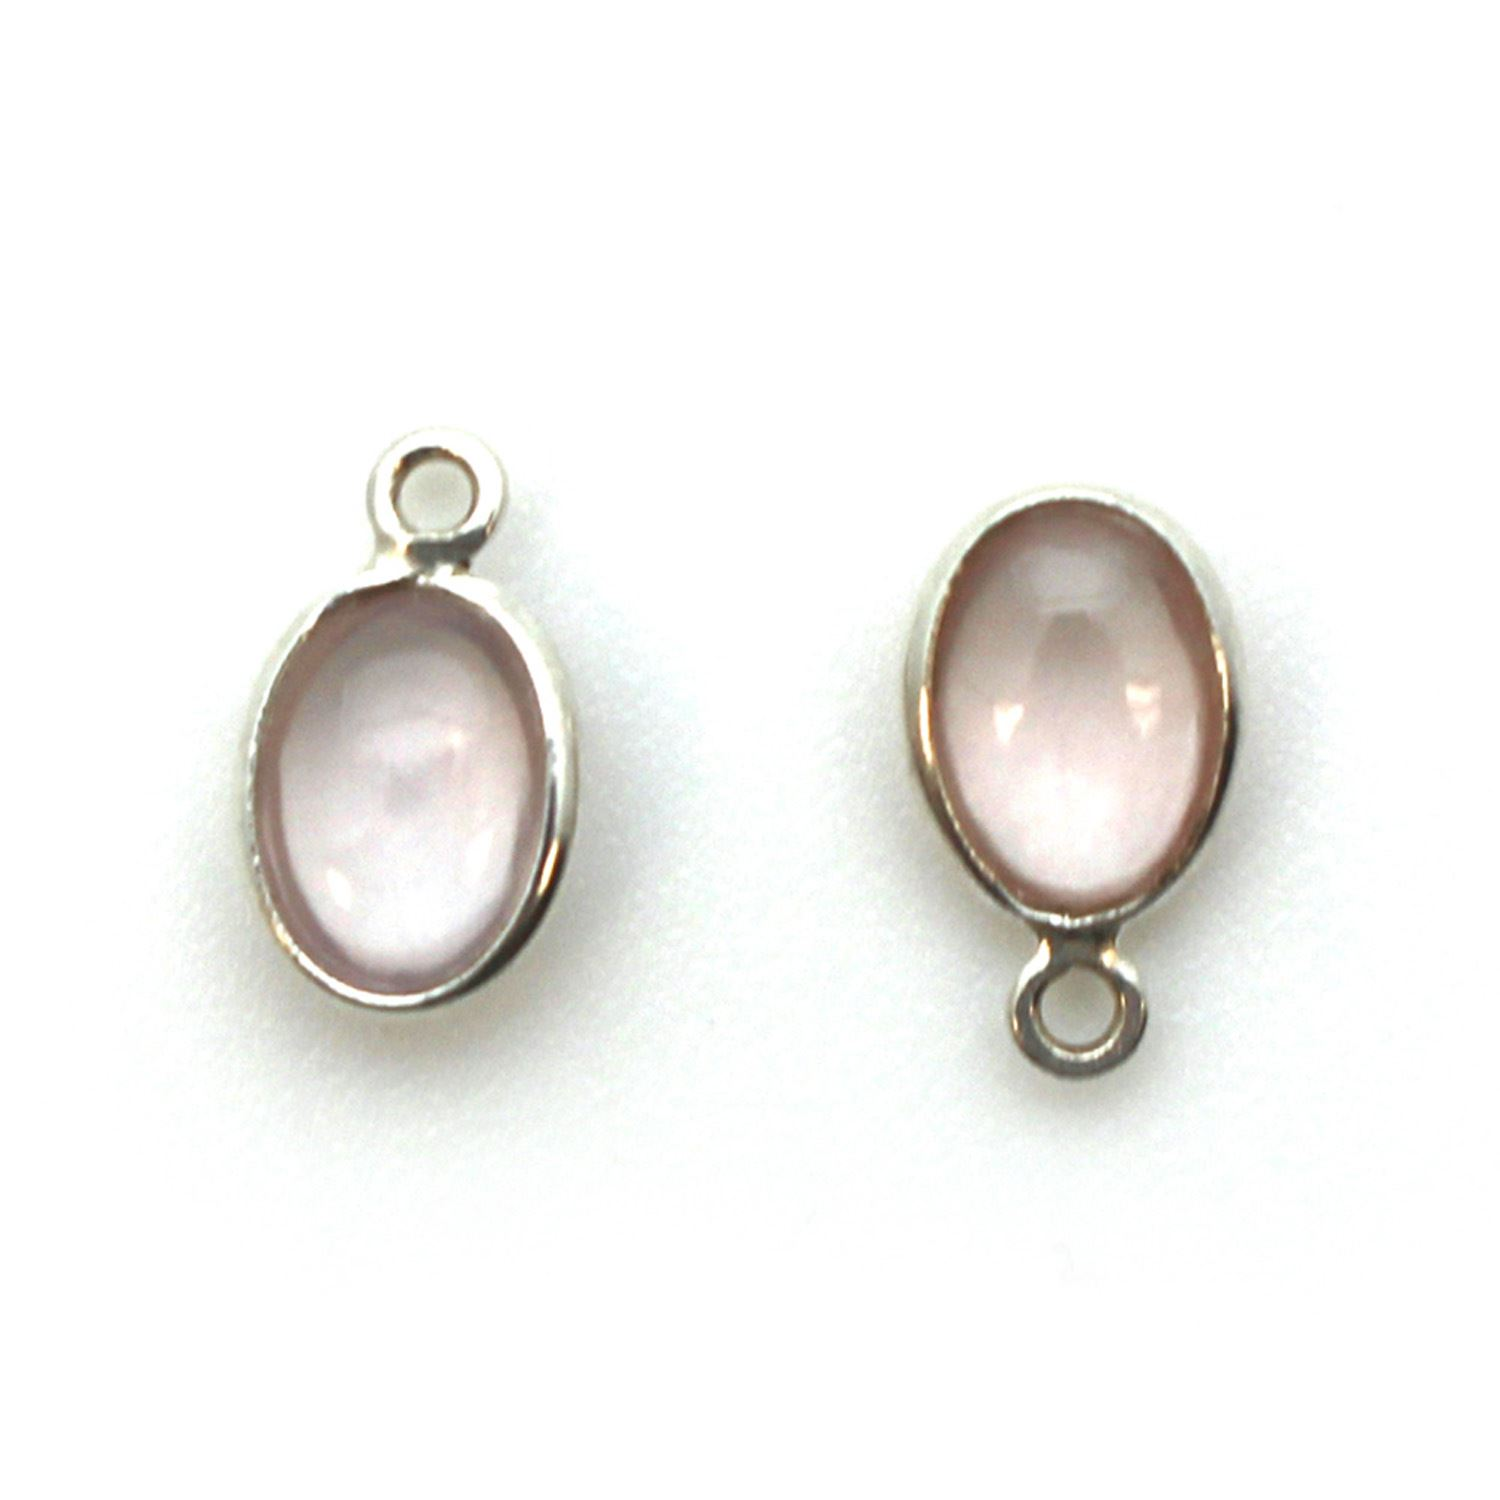 Bezel Charm Pendant - Silver Charm - Natural Rose Quartz -Tiny Oval Shape